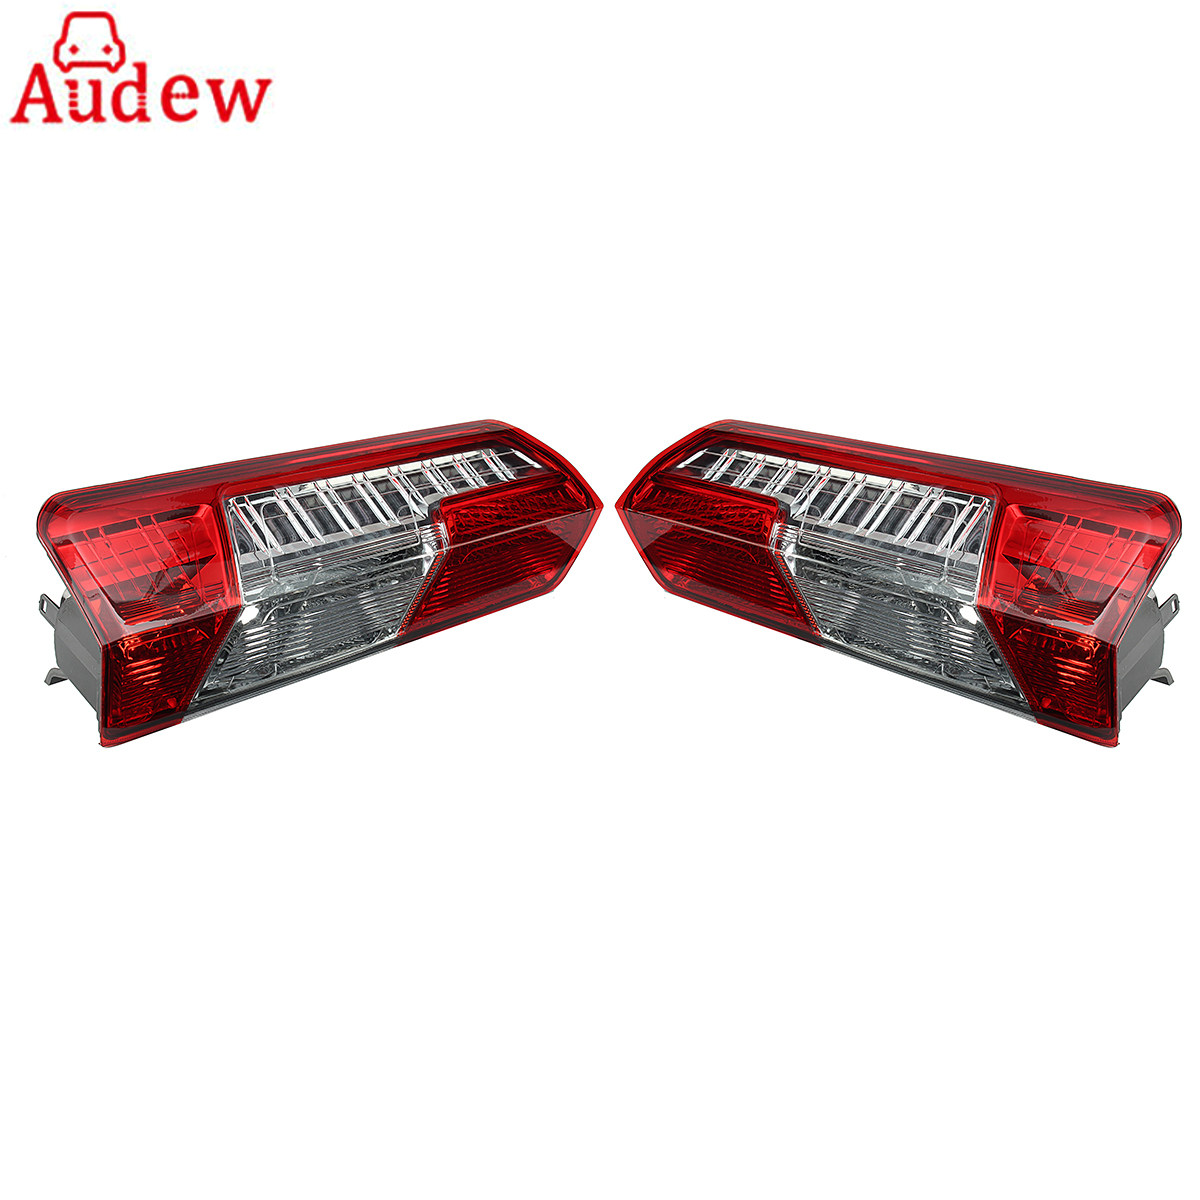 1Pcs Car Rear Tail Light Back Lamp Lens Left / Right Side Tail Light For Ford Transit MK8 MKVIII 2014 Onward цена